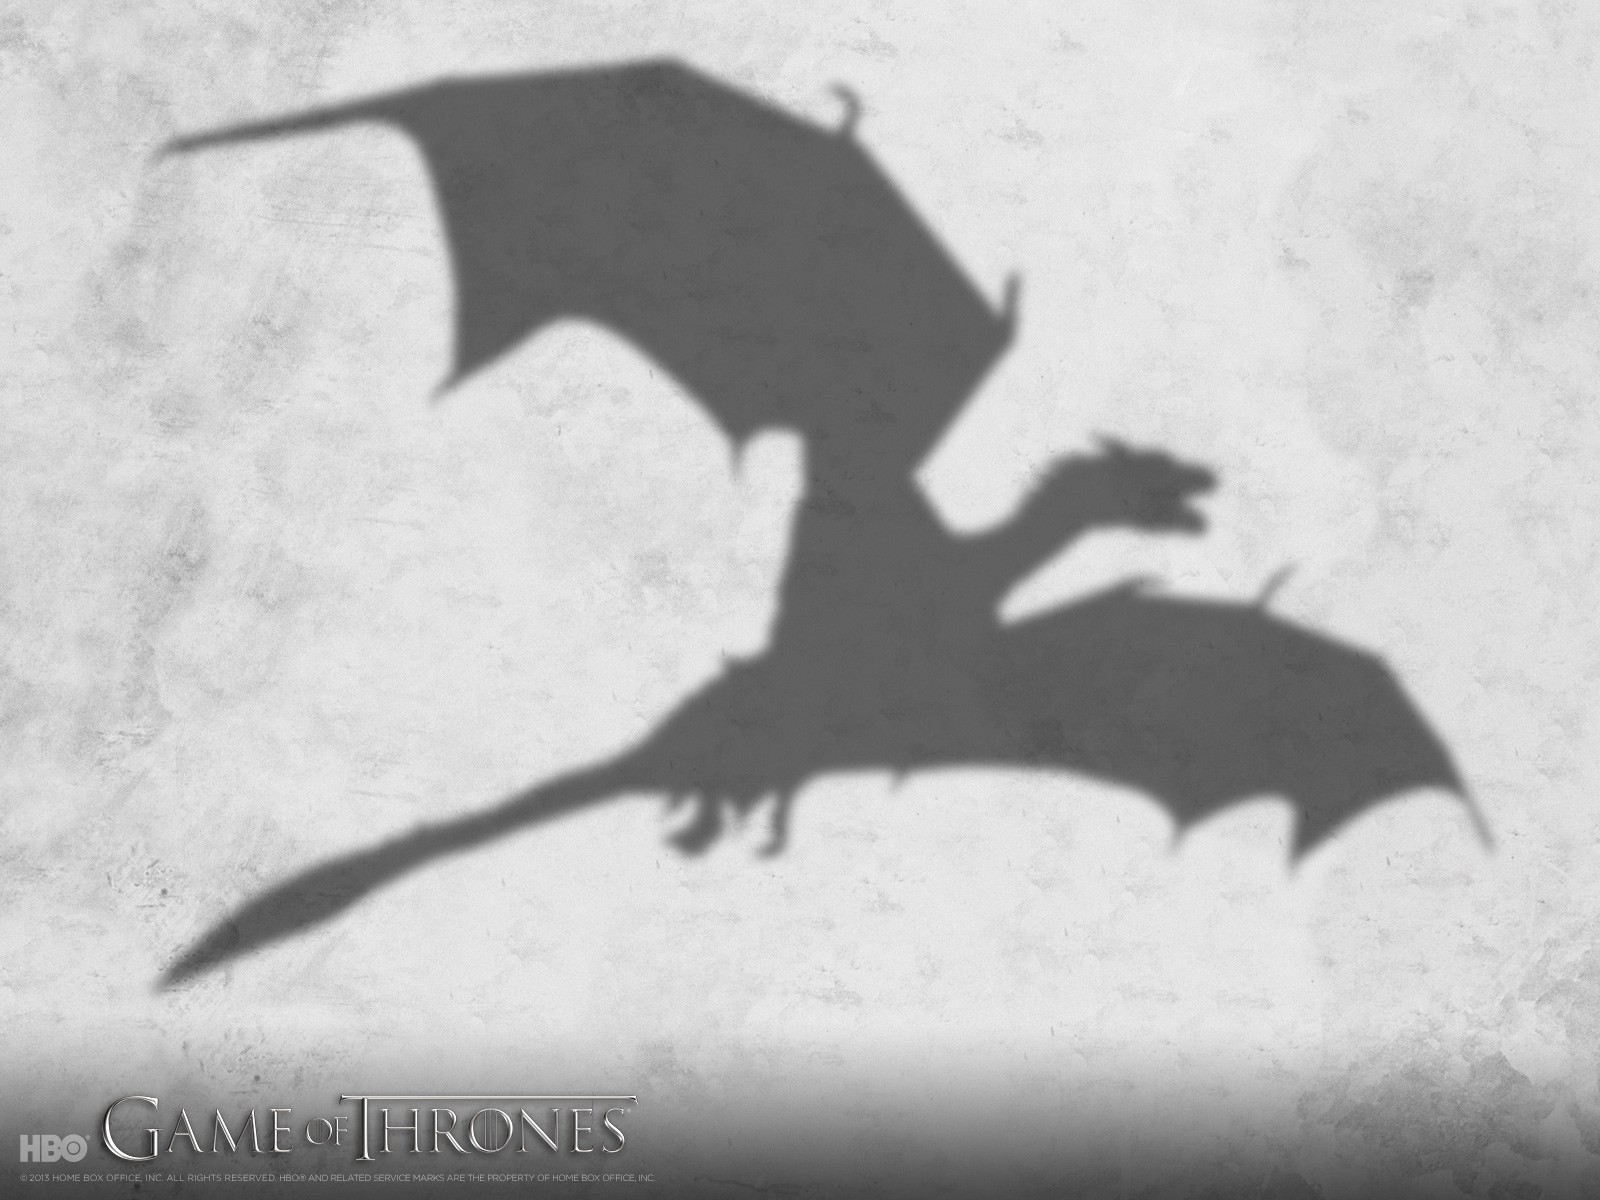 Game Of Thrones Wallpaper and Background Image 1600x1200 1600x1200